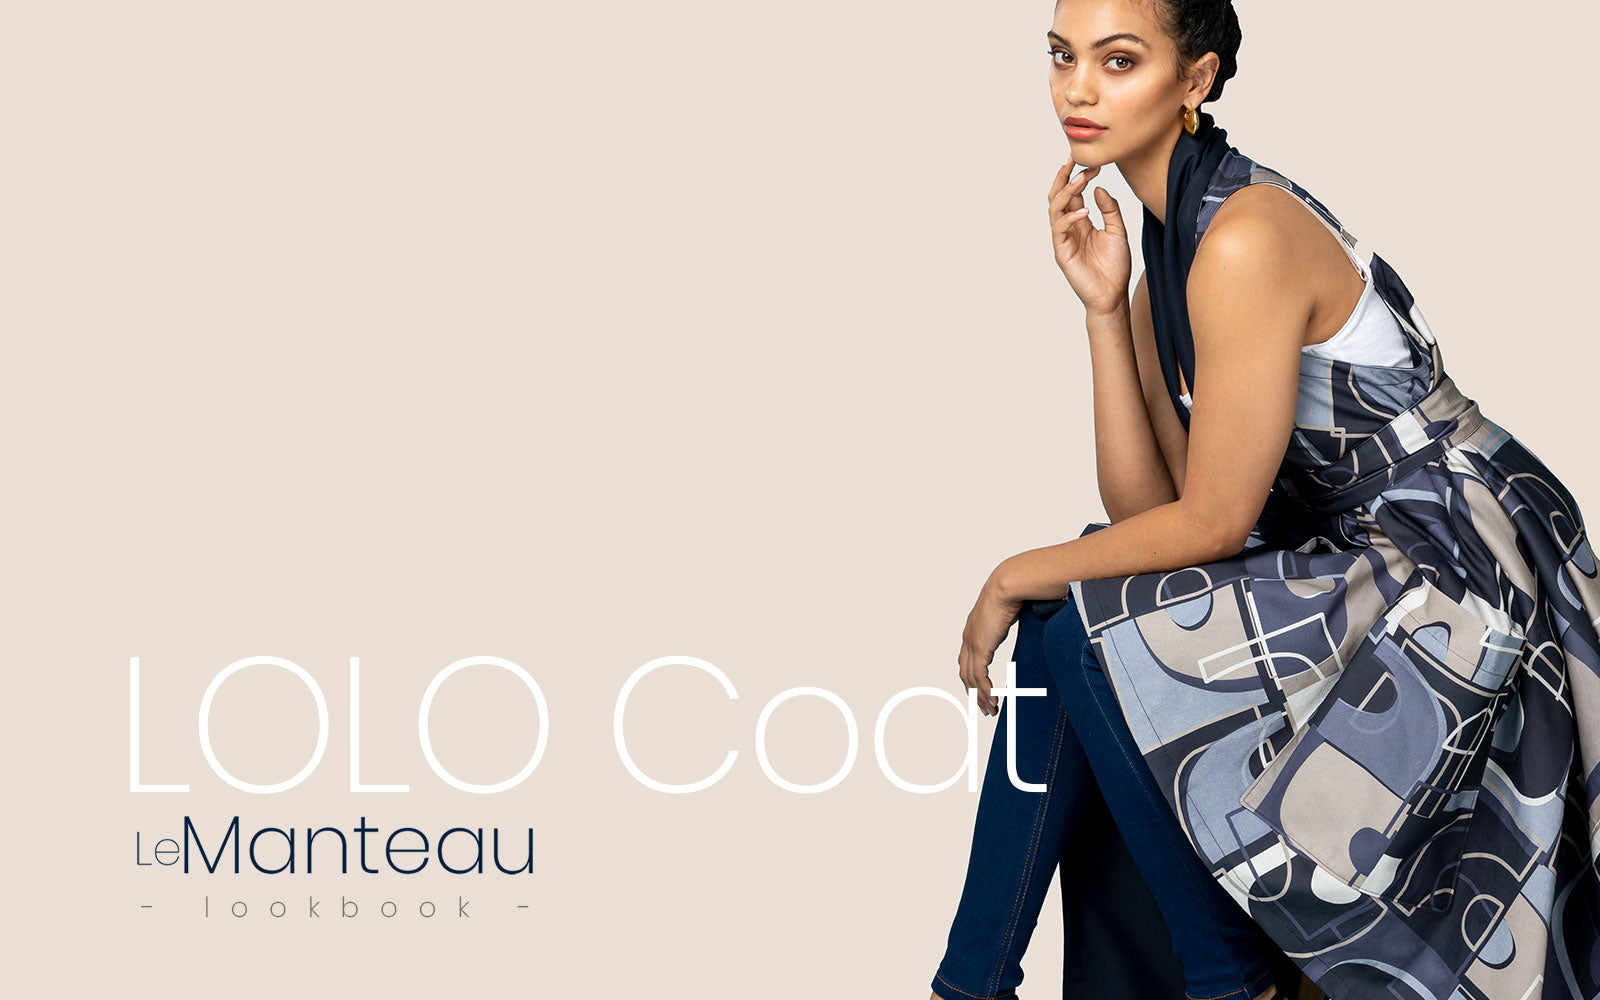 LOLO Coat | Collection Lookbook